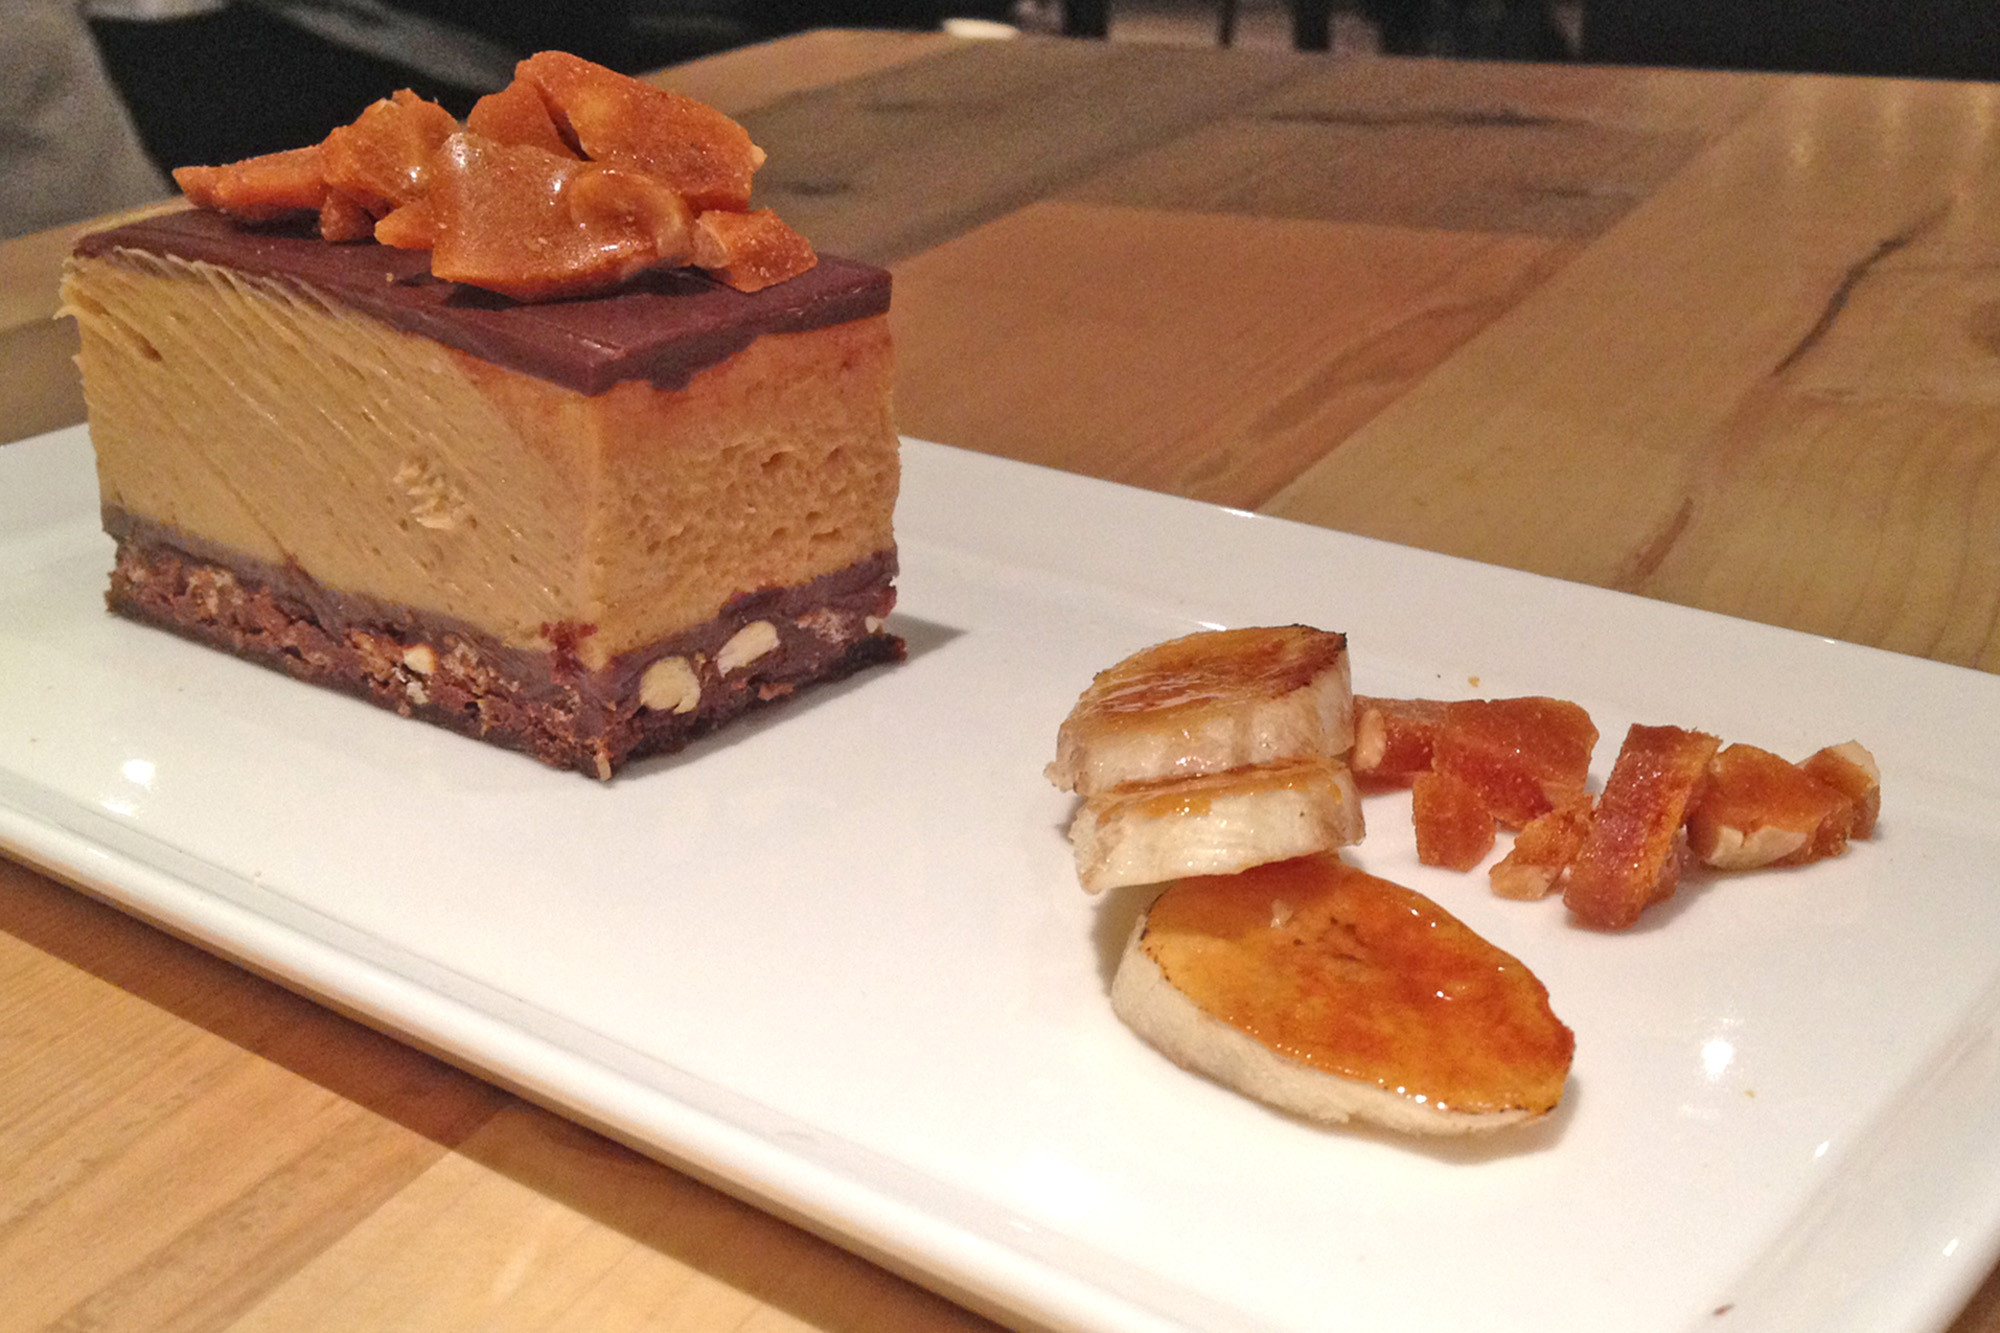 The rich peanut butter mousse stack, served with peanut butter brittle and brûléed bananas, is perfect for sharing.